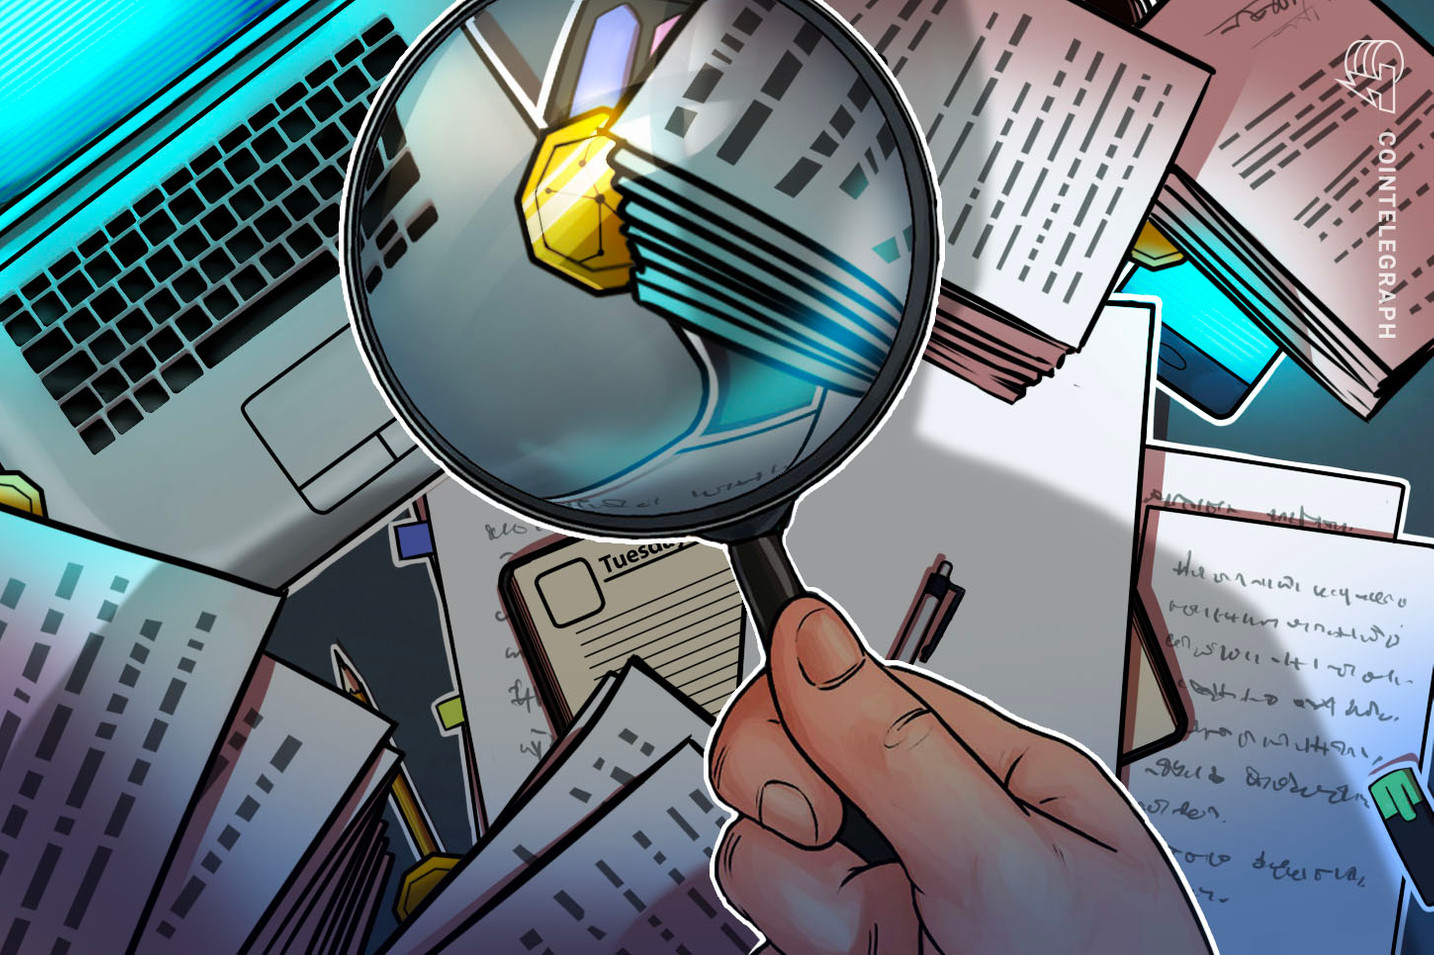 Binance Security Report Sheds Light On Crypto Scams